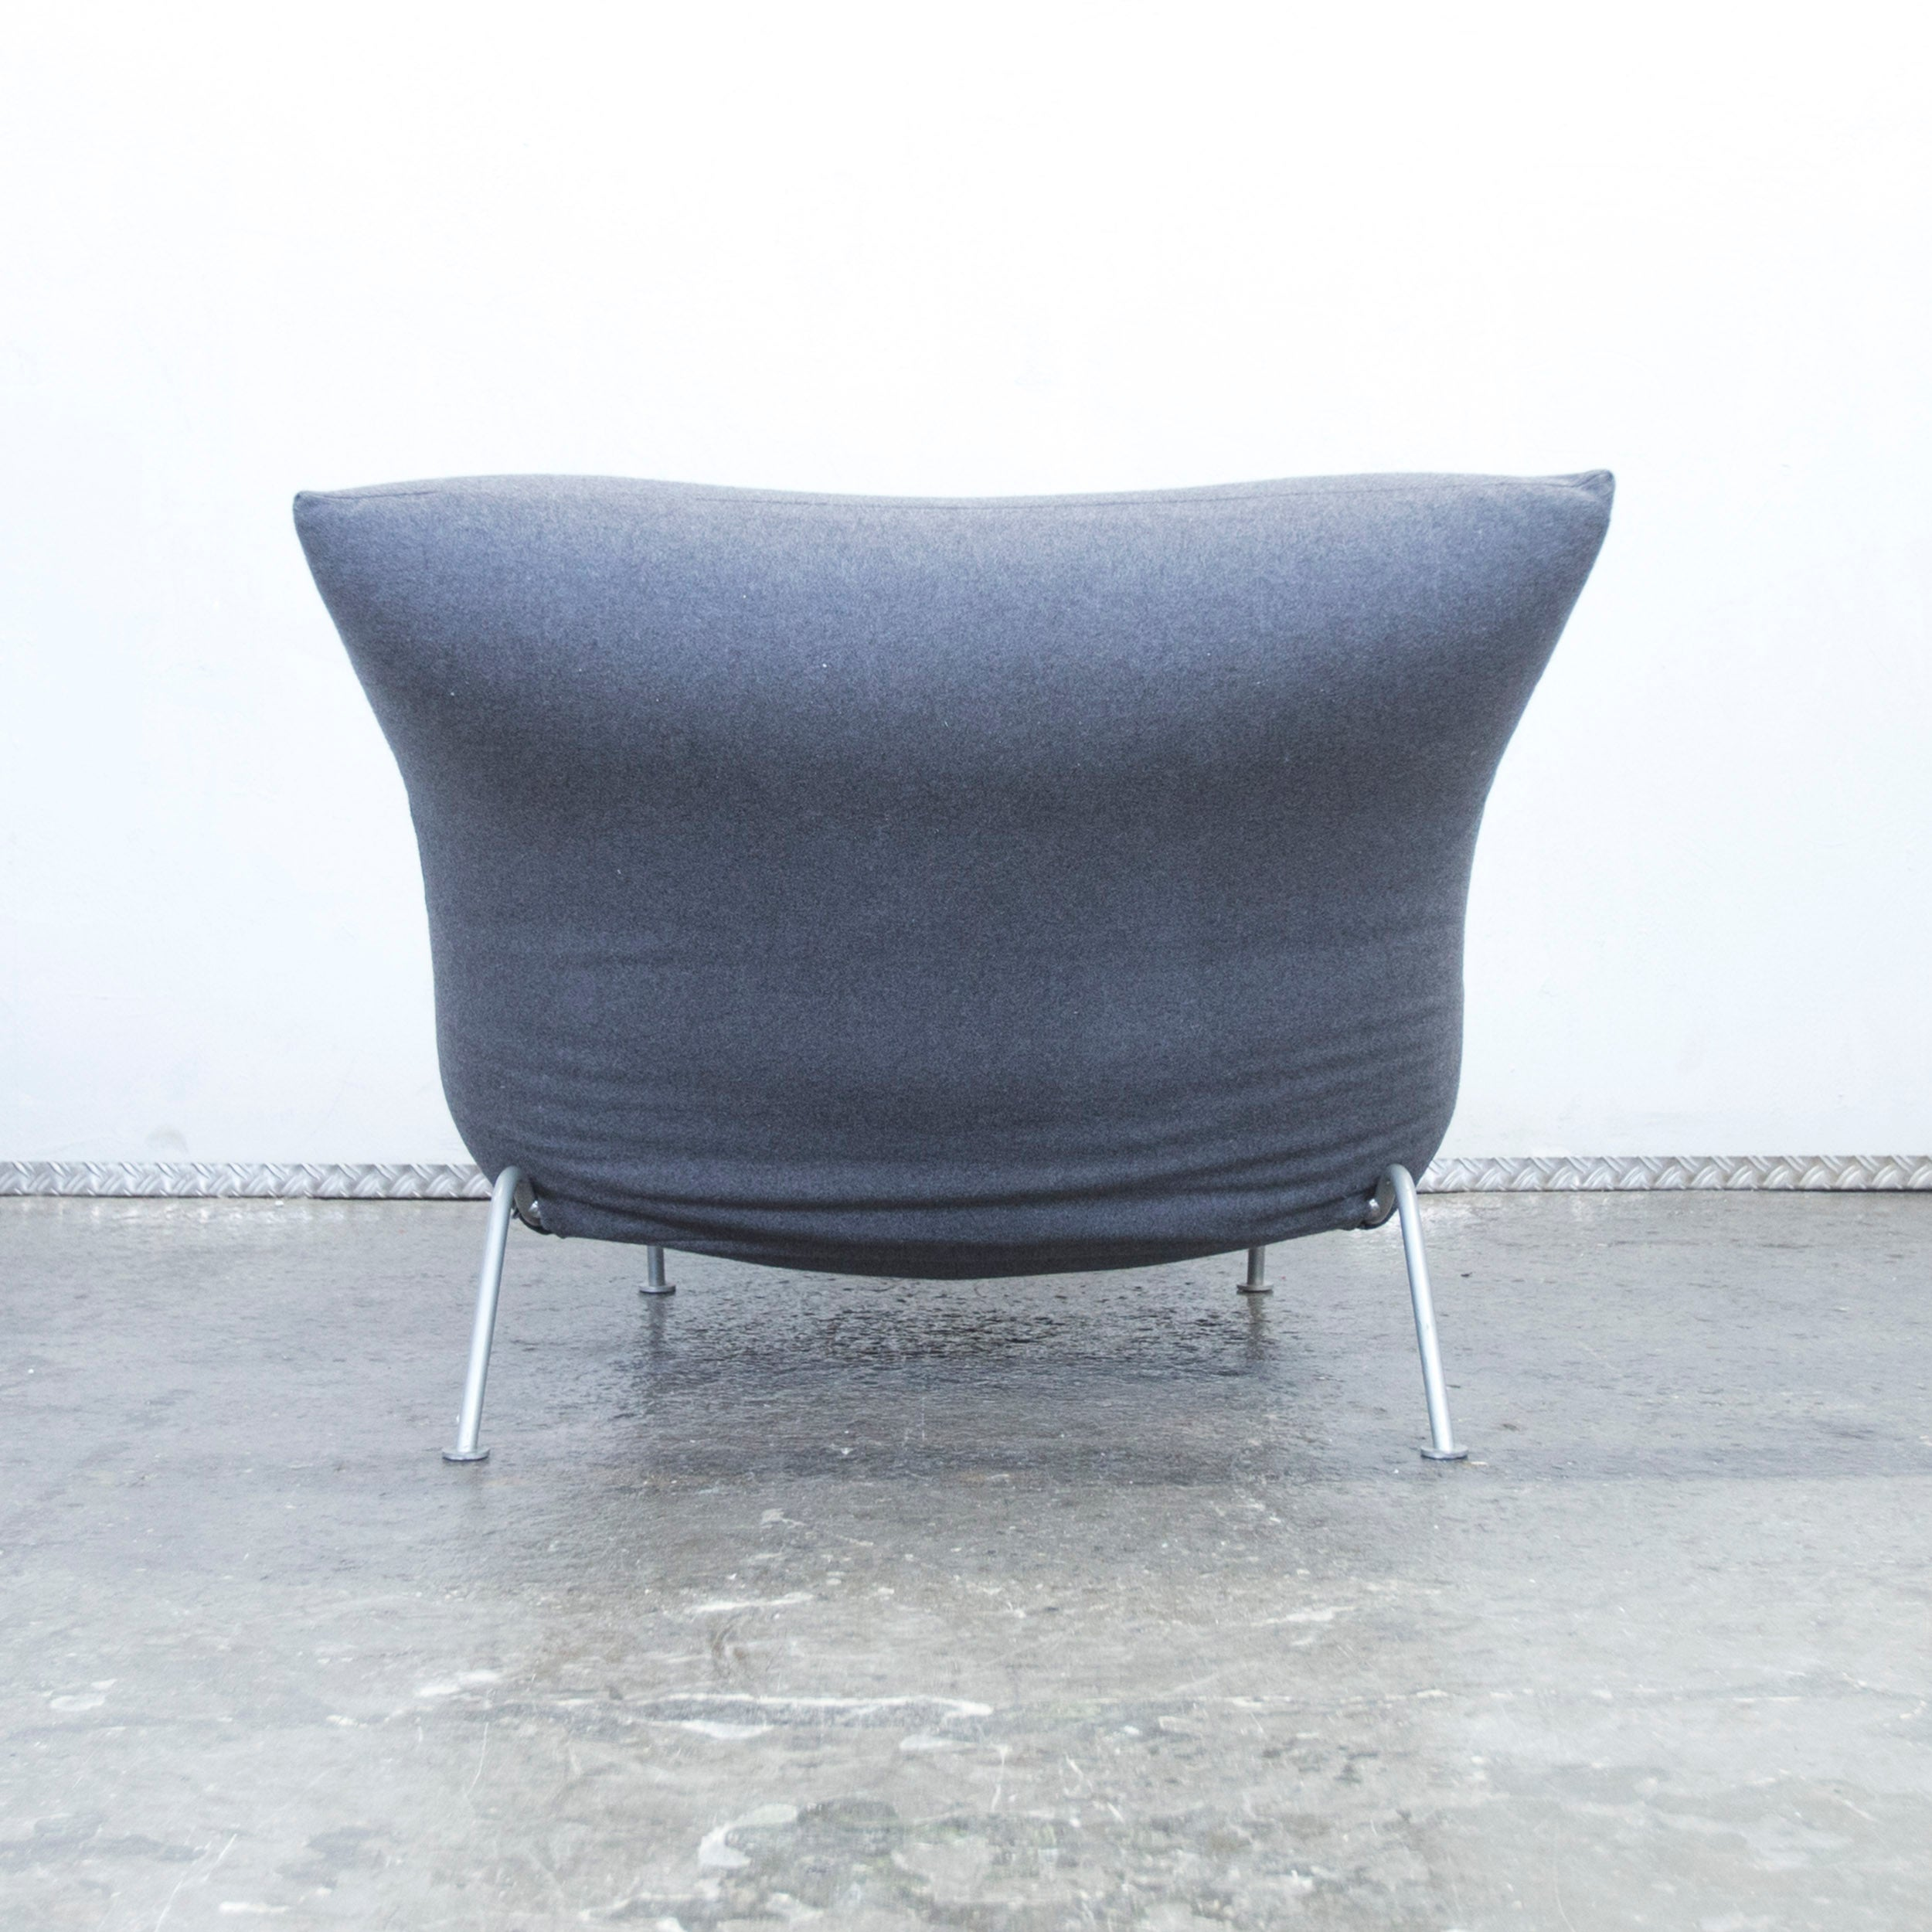 Ligne Roset Sessel Calin Lignet Roset Calin Fabric Chaise Longue Couch Chair Grey Function Modern